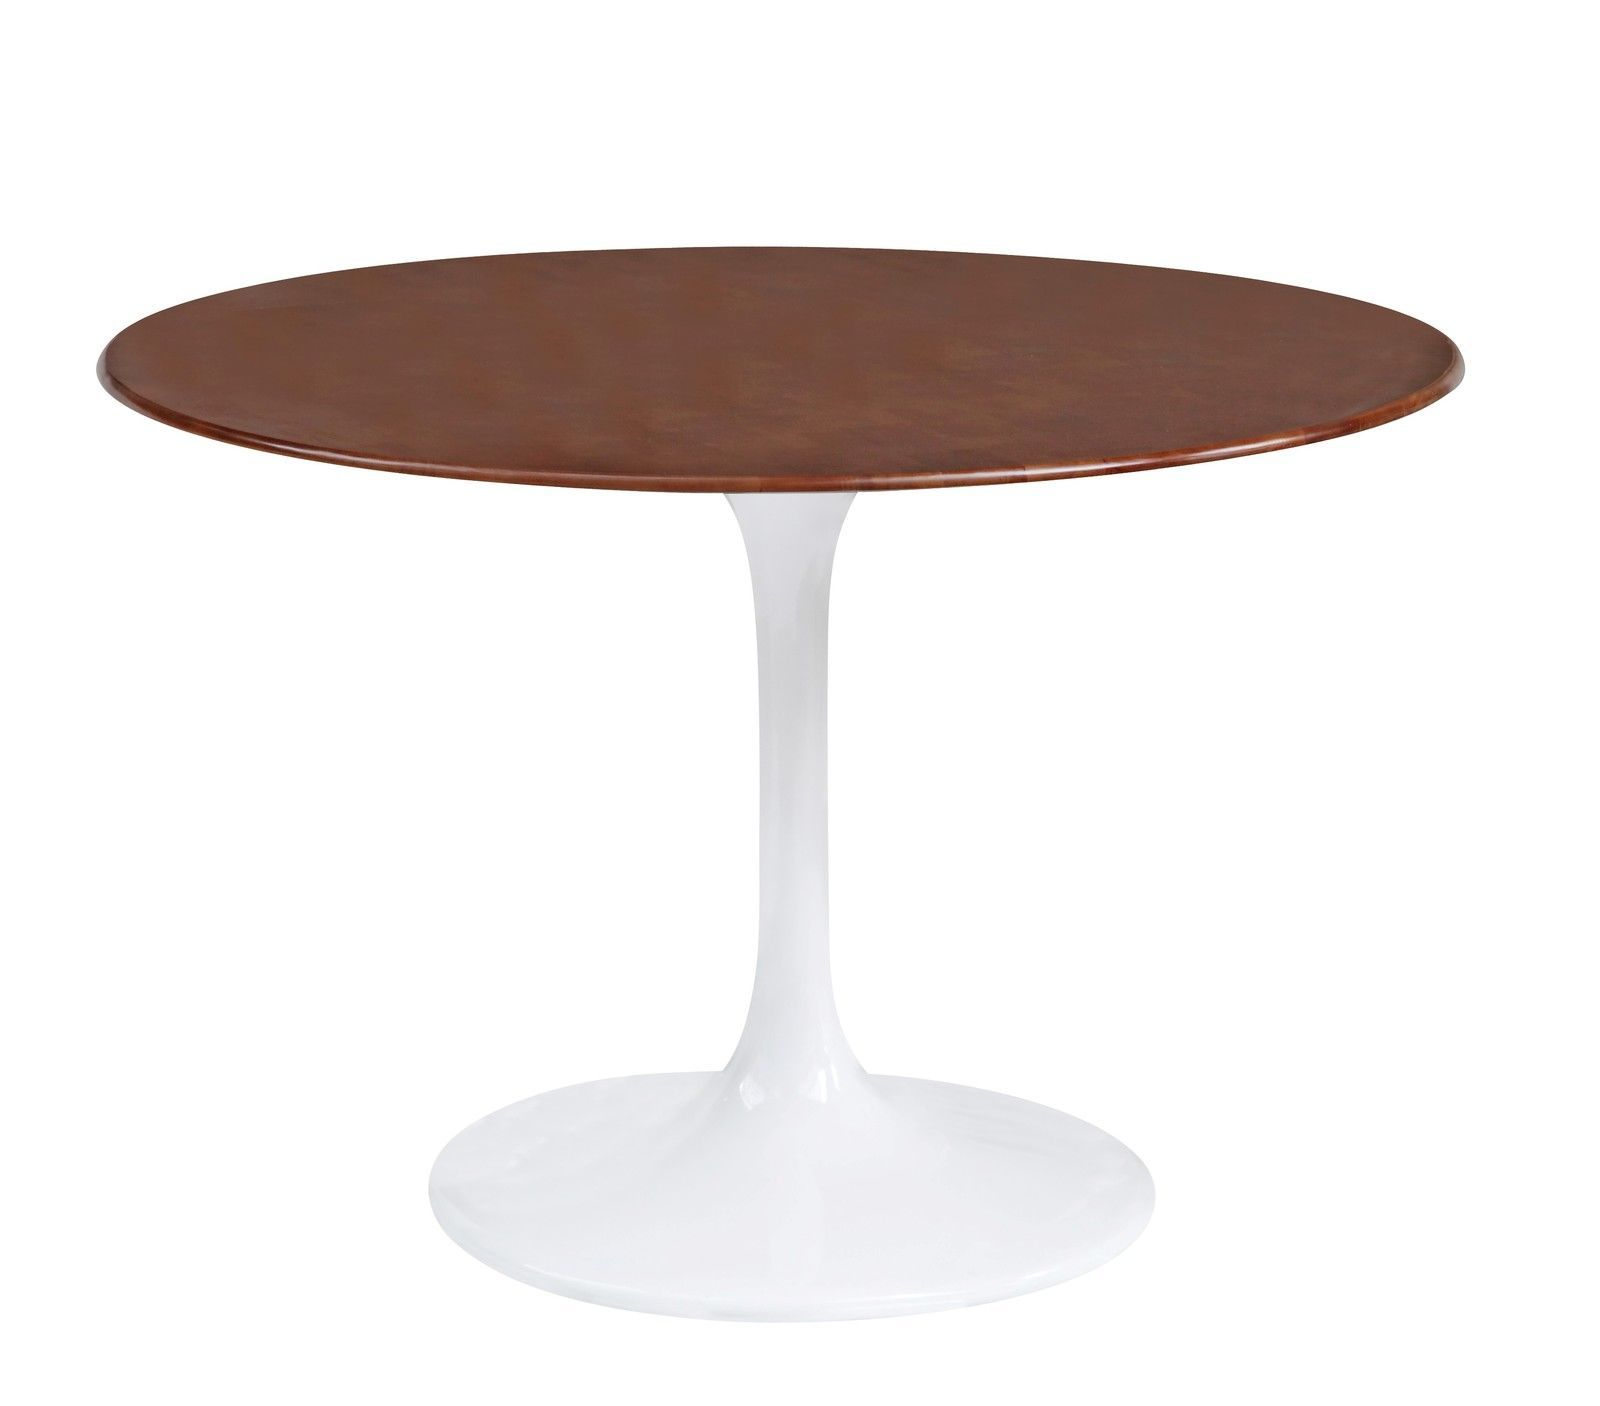 Drop Leaf Table Round Images. 35 Antique Drop Leaf Dining ...